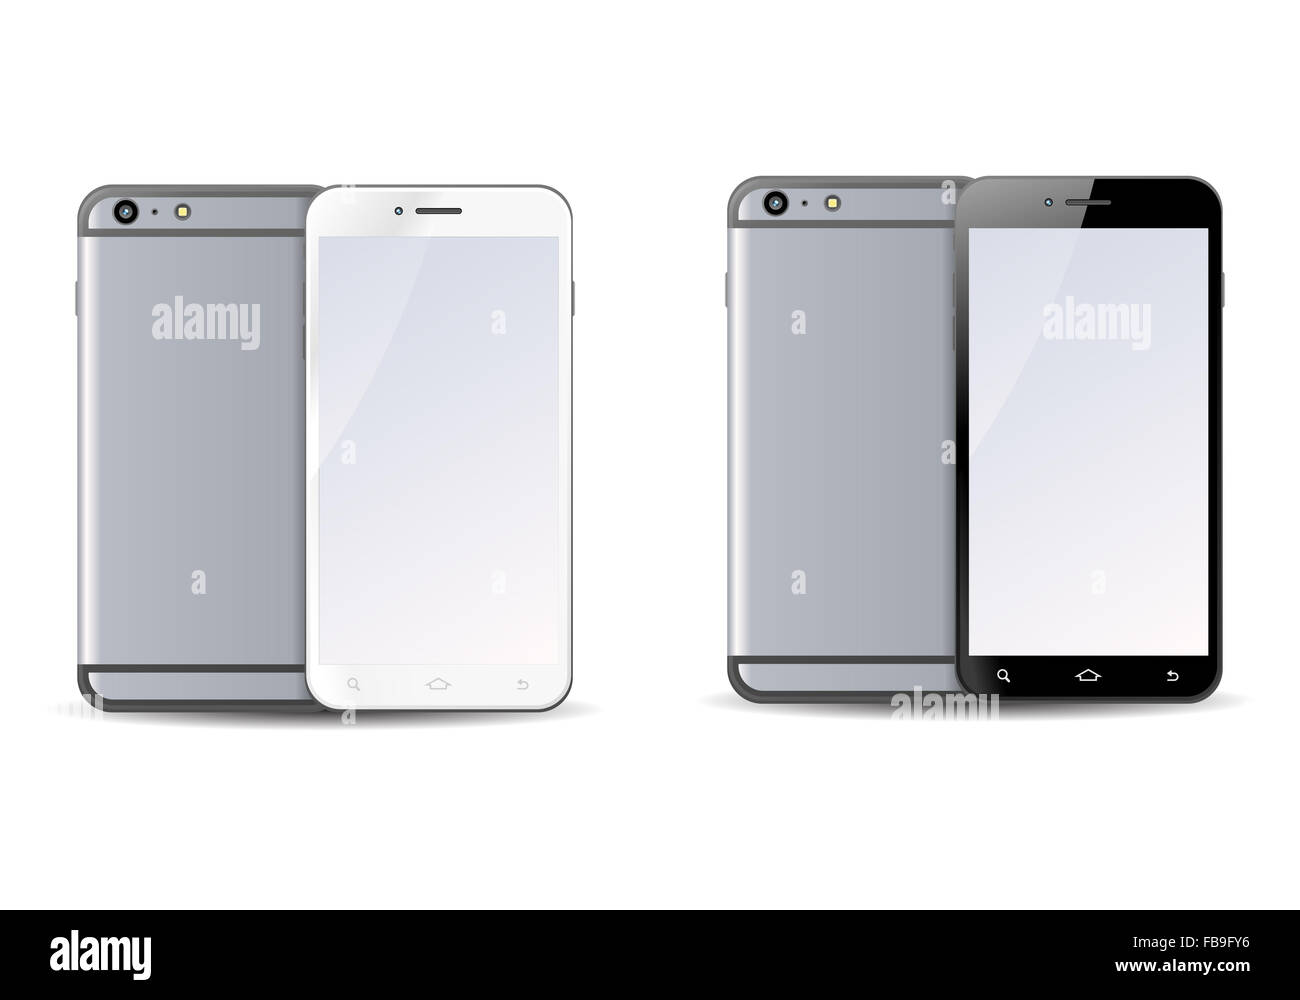 illustration of a mobile phone on isolate white background - Stock Image